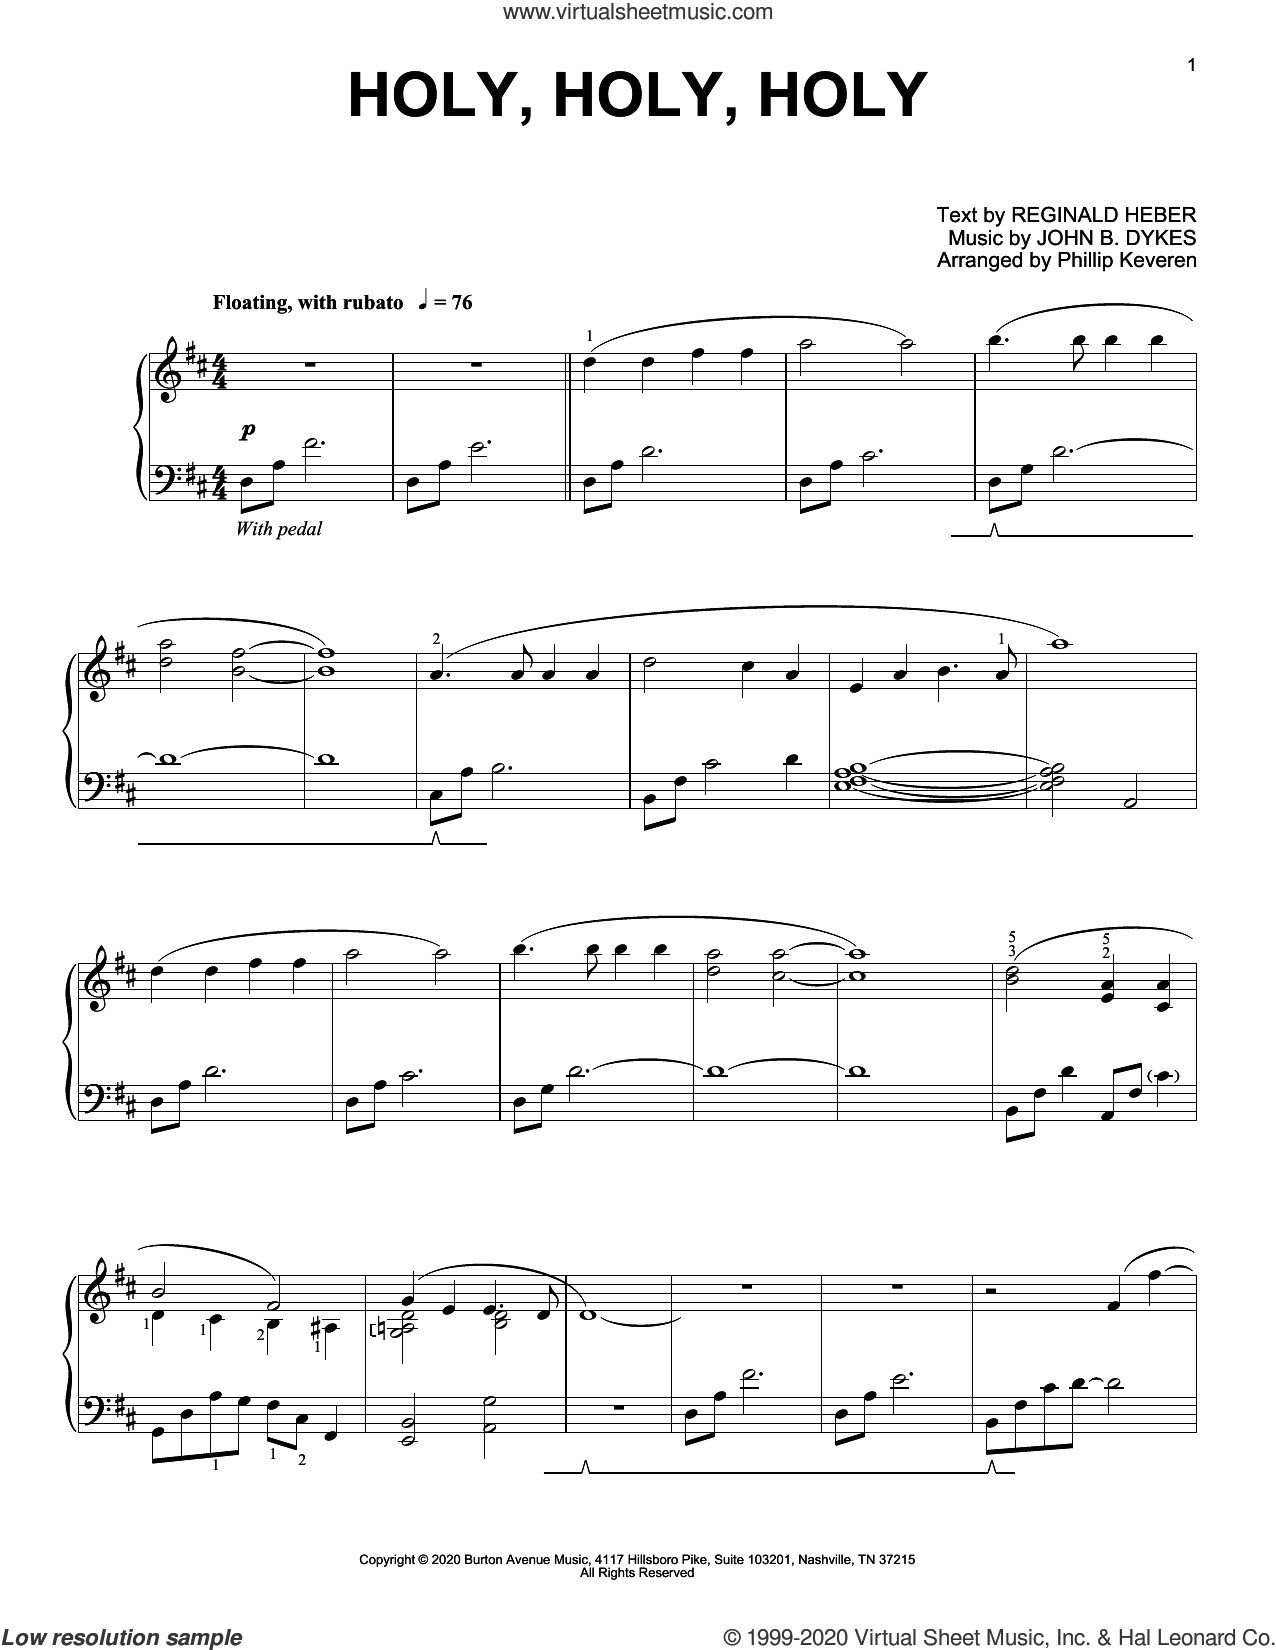 Holy, Holy, Holy (arr. Phillip Keveren) sheet music for piano solo by John Bacchus Dykes, Phillip Keveren and Reginald Heber, intermediate skill level